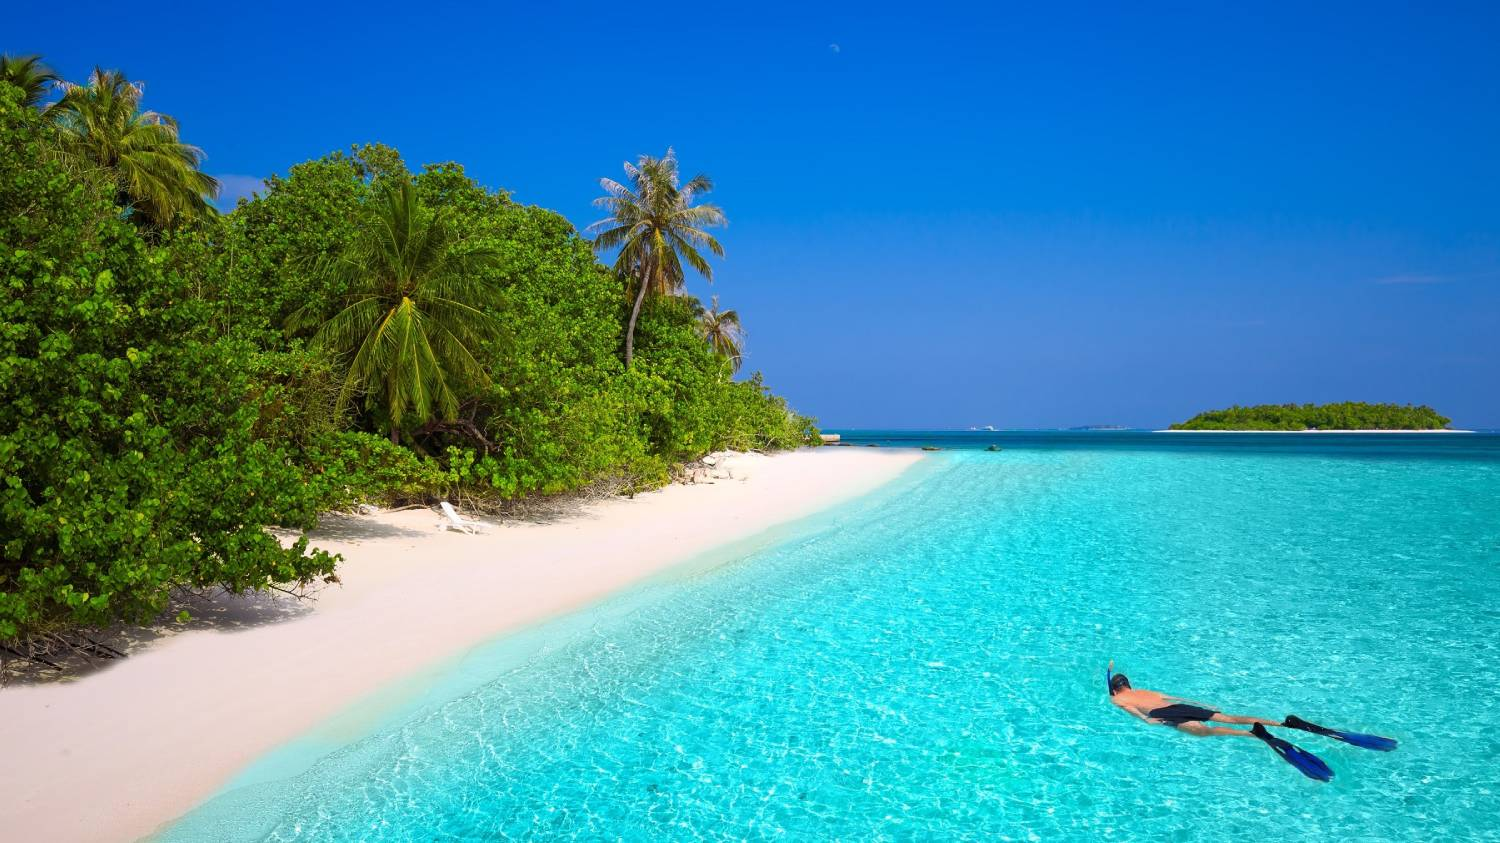 Bora Bora - The Best Places To Visit In French Polynesia